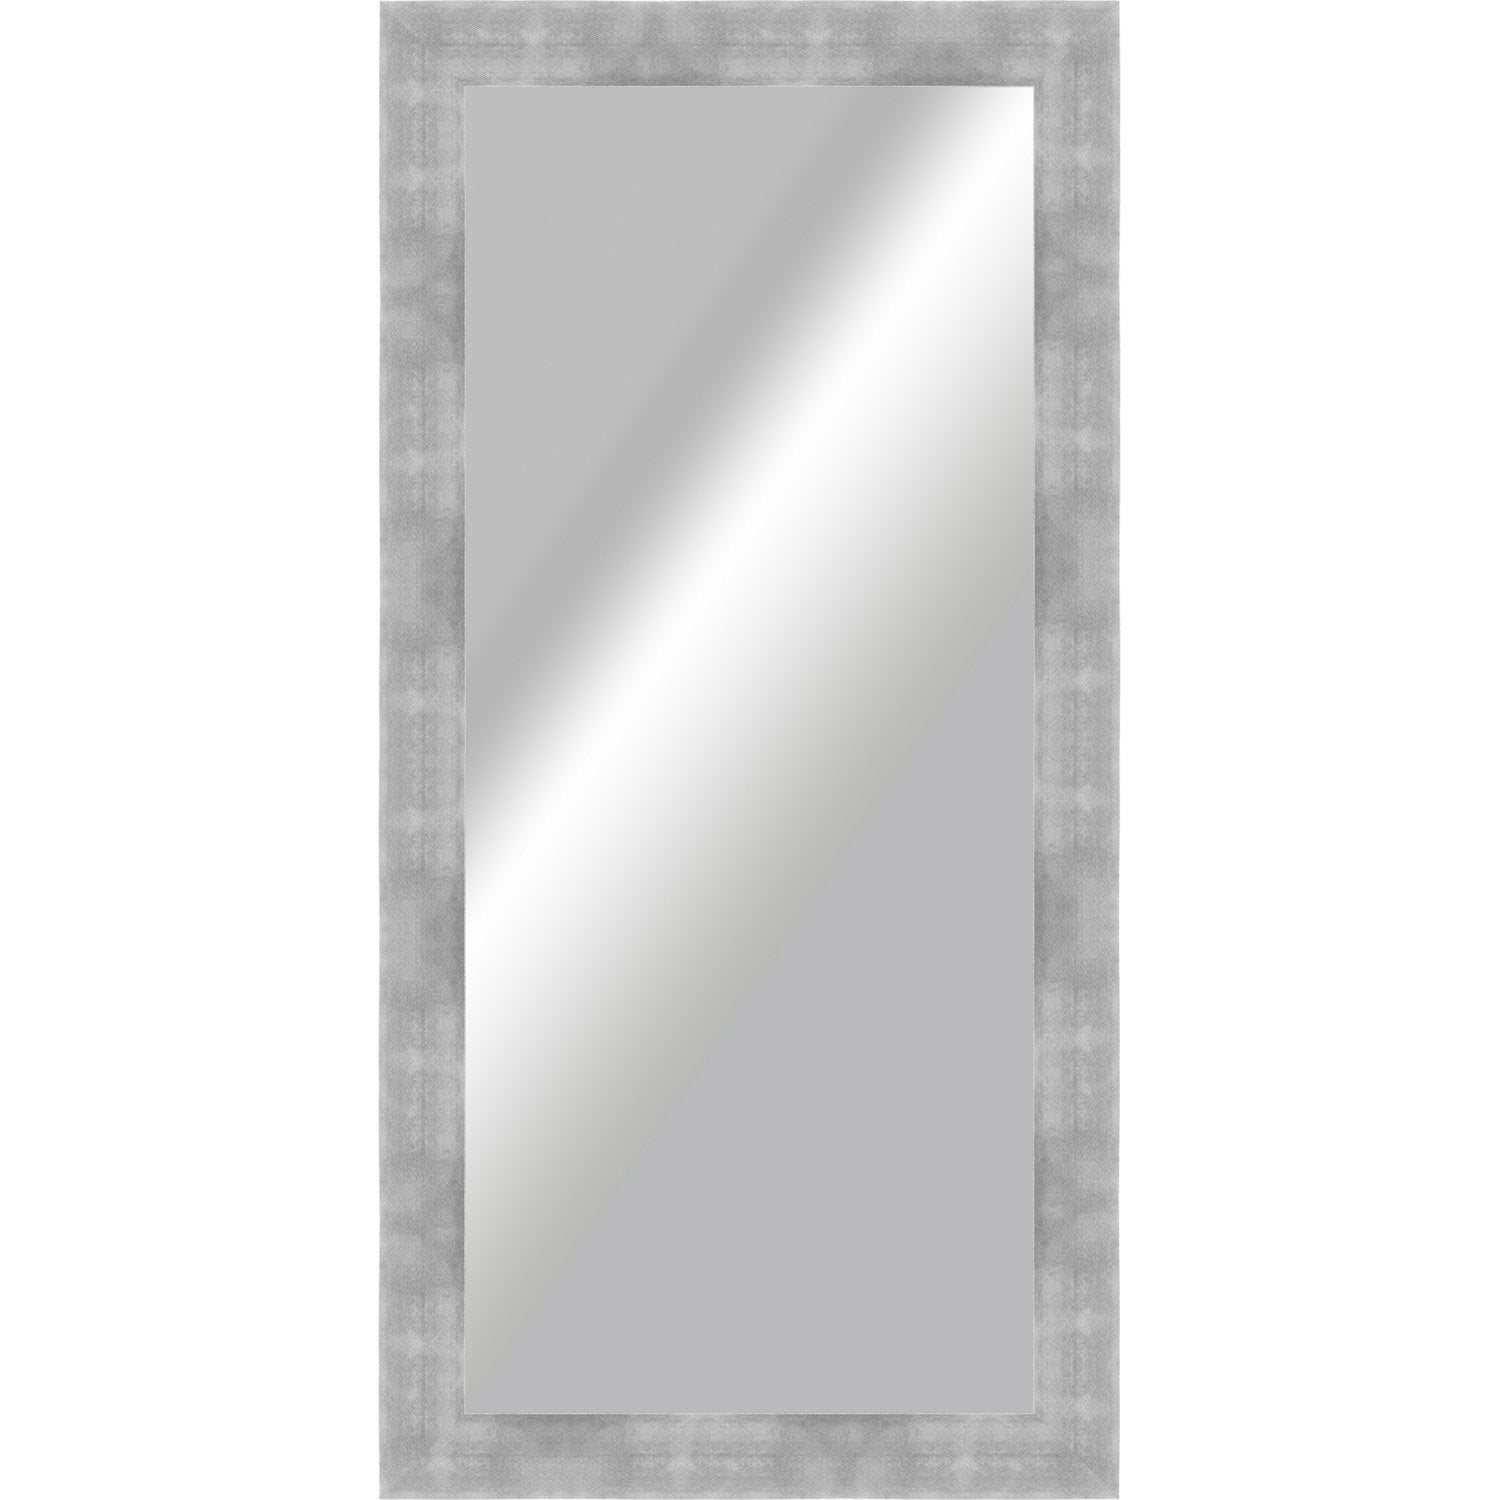 Miroir grand format leroy merlin for Miroir 50 x 70 leroy merlin